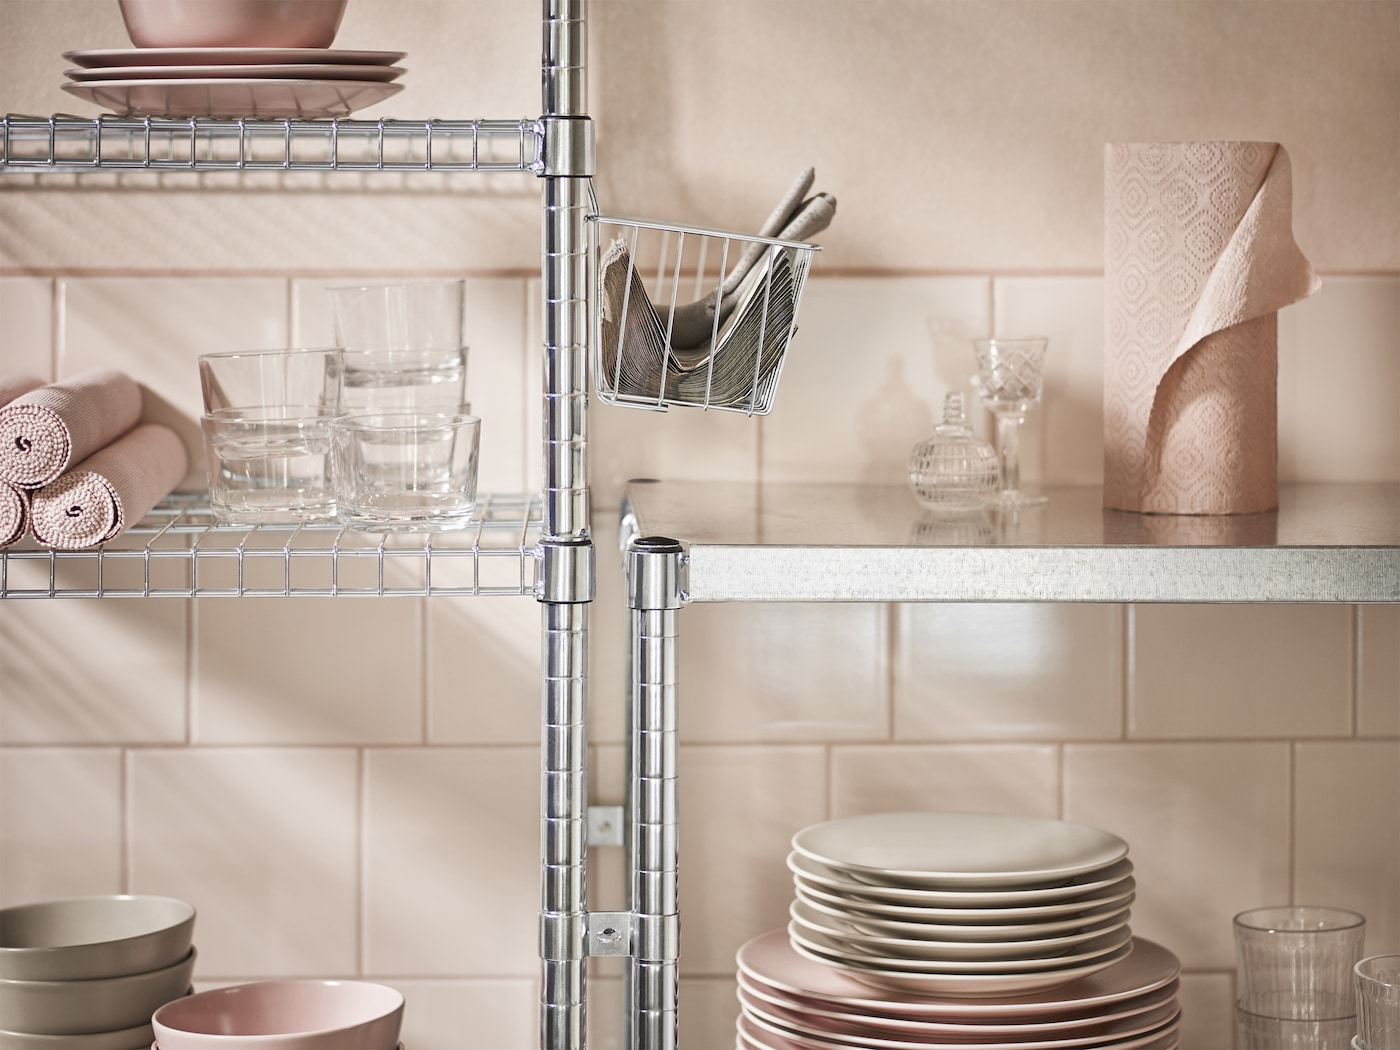 Close-up of shelving units in galvanised steel with a cover for wire shelves to make them more even and stable. Also shown together with a clip-on basket filled with paper napkins.